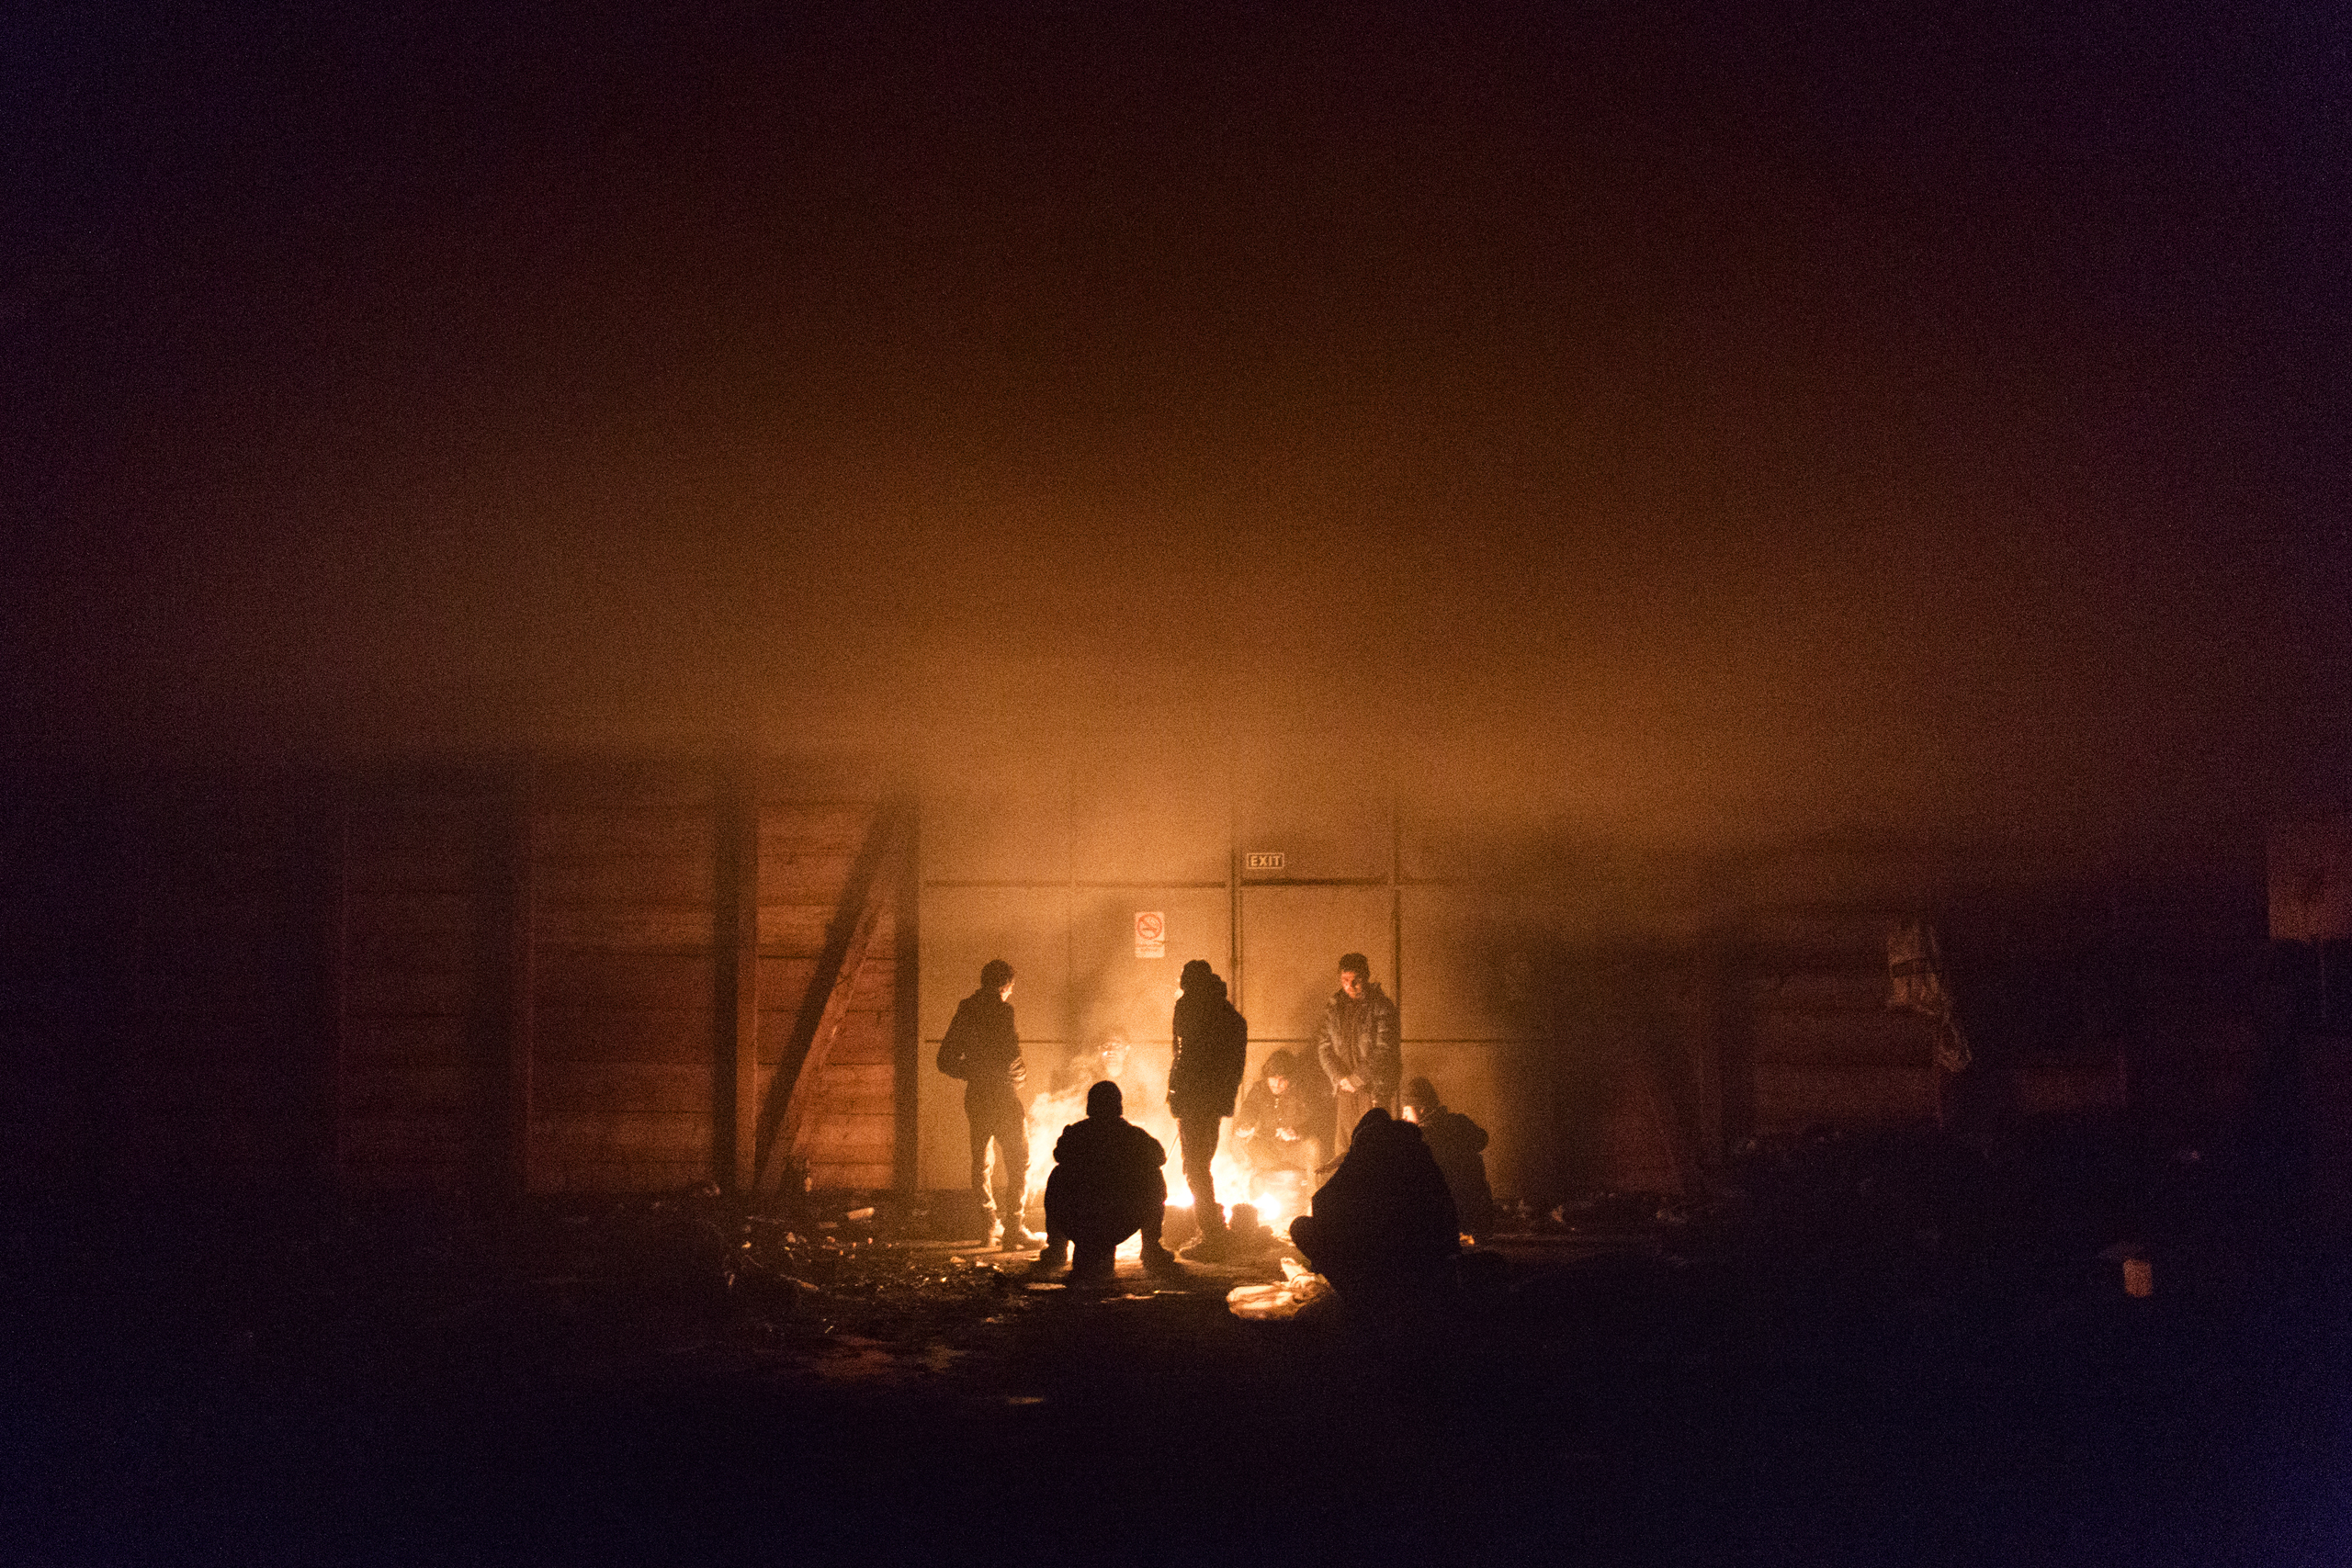 A group of unaccompanied minors from Afghanistan try to keep warm near a fire in an abandoned warehouse, Belgrade, Serbia, Jan. 14, 2017.